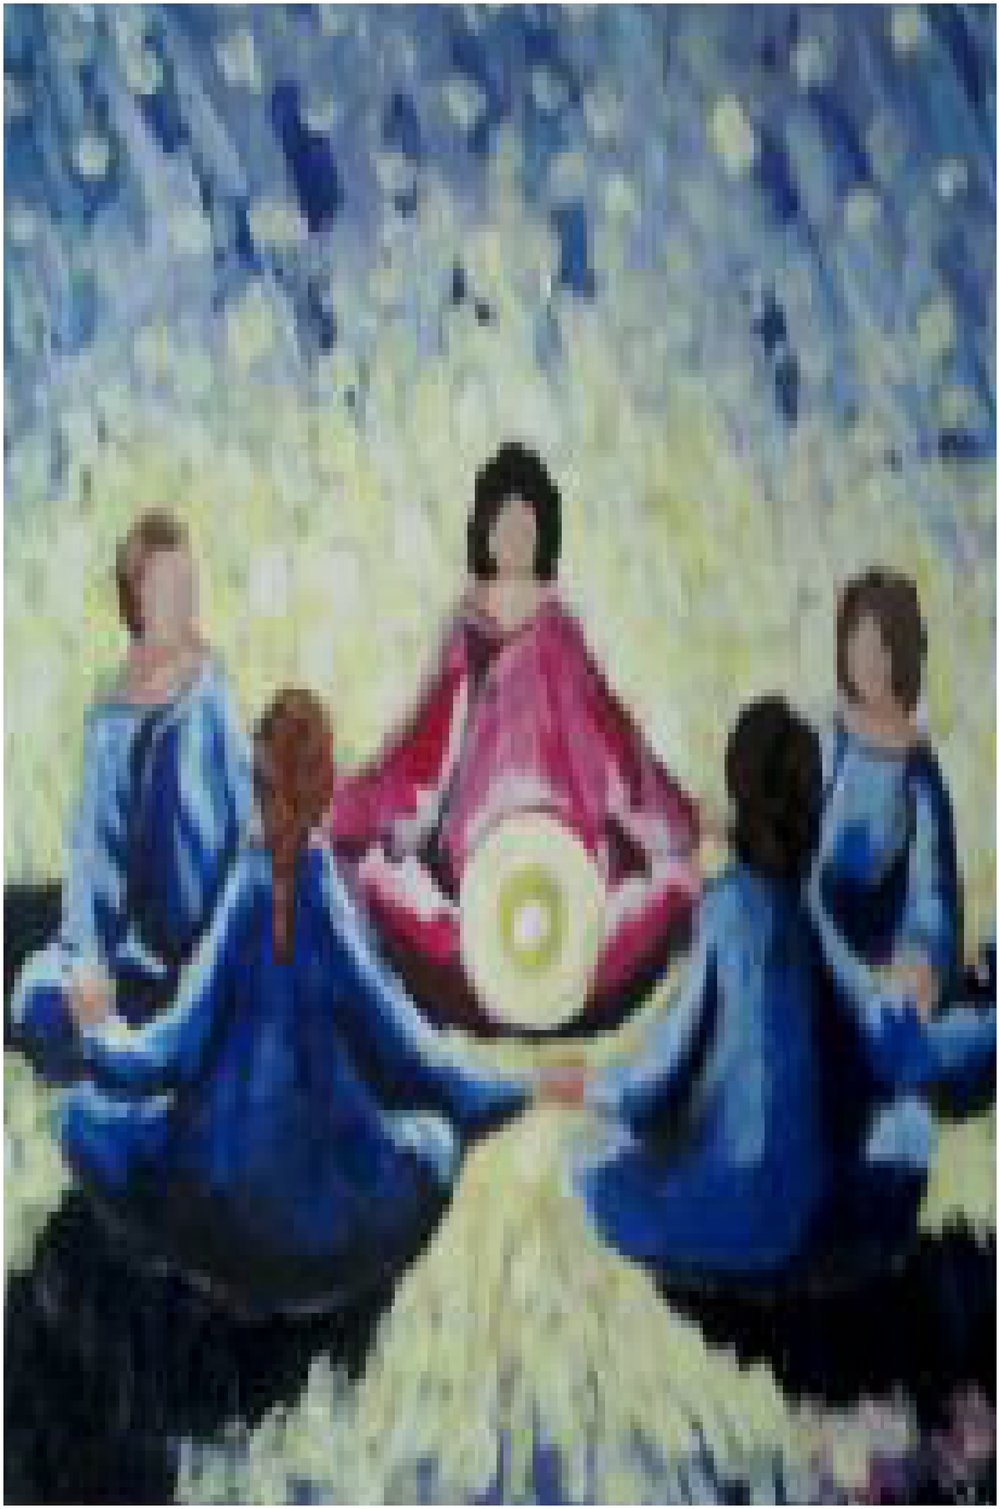 Join us as together we meditate for healing of mind, body and spirit.  We will be sending healing to the circle and beyond.  Then to conclude our service you will experience the soothing yet powerful healing of a Reiki aura clearing by Reiki Practitioners.  This is a free community event.  Everyone is welcome to join our circle. All that is required is to come with a willingness to give and receive love, light and healing with the uttermost respect for everyone's journey.